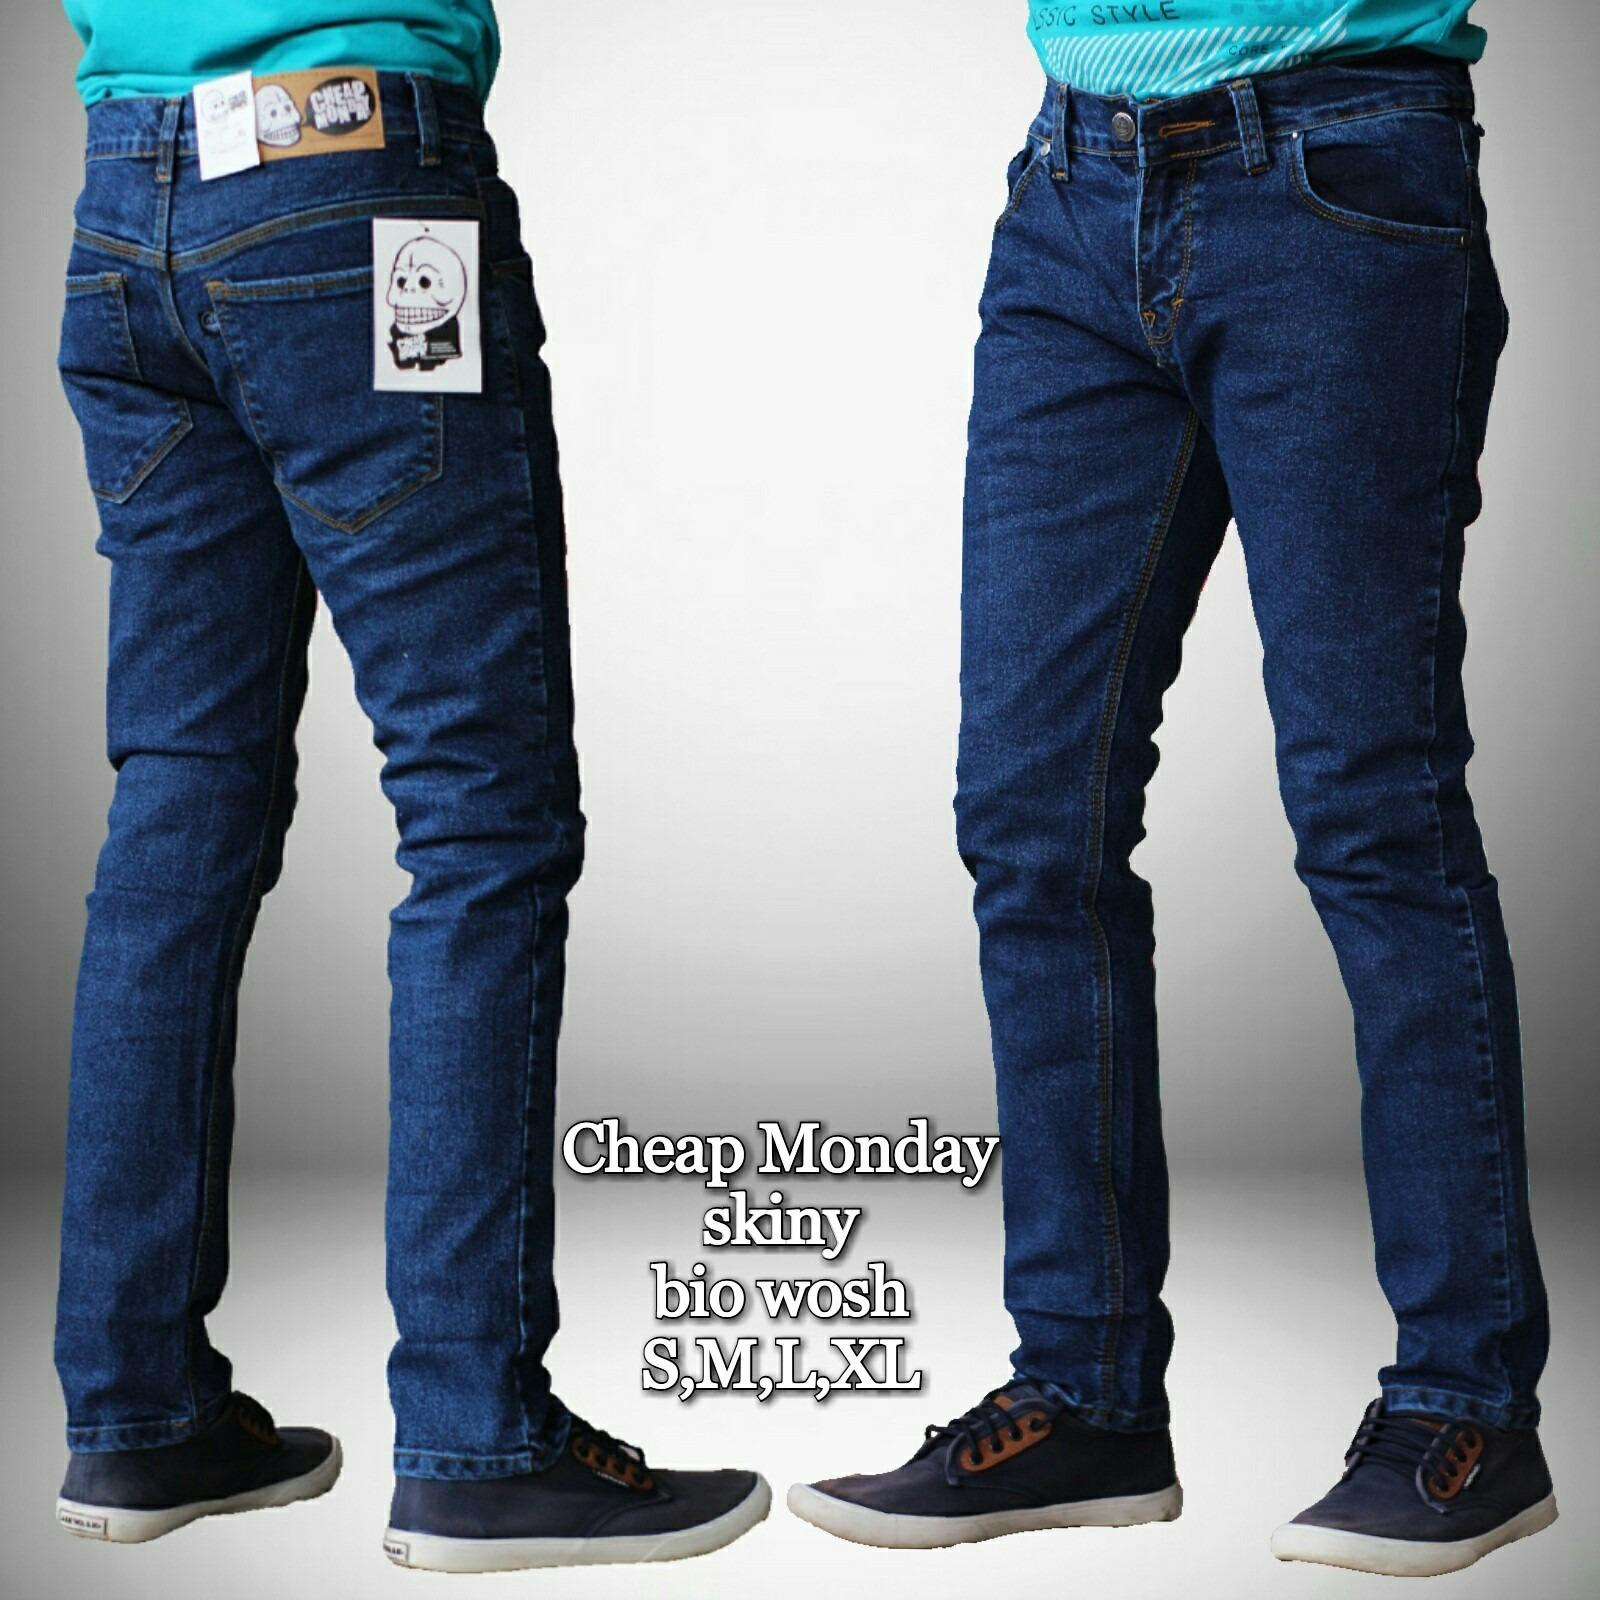 JEANS SLIMFIT INTERNATIONAL  QUALITY (27-38) DISTRO PRODUCT - READY ALL ITEMS